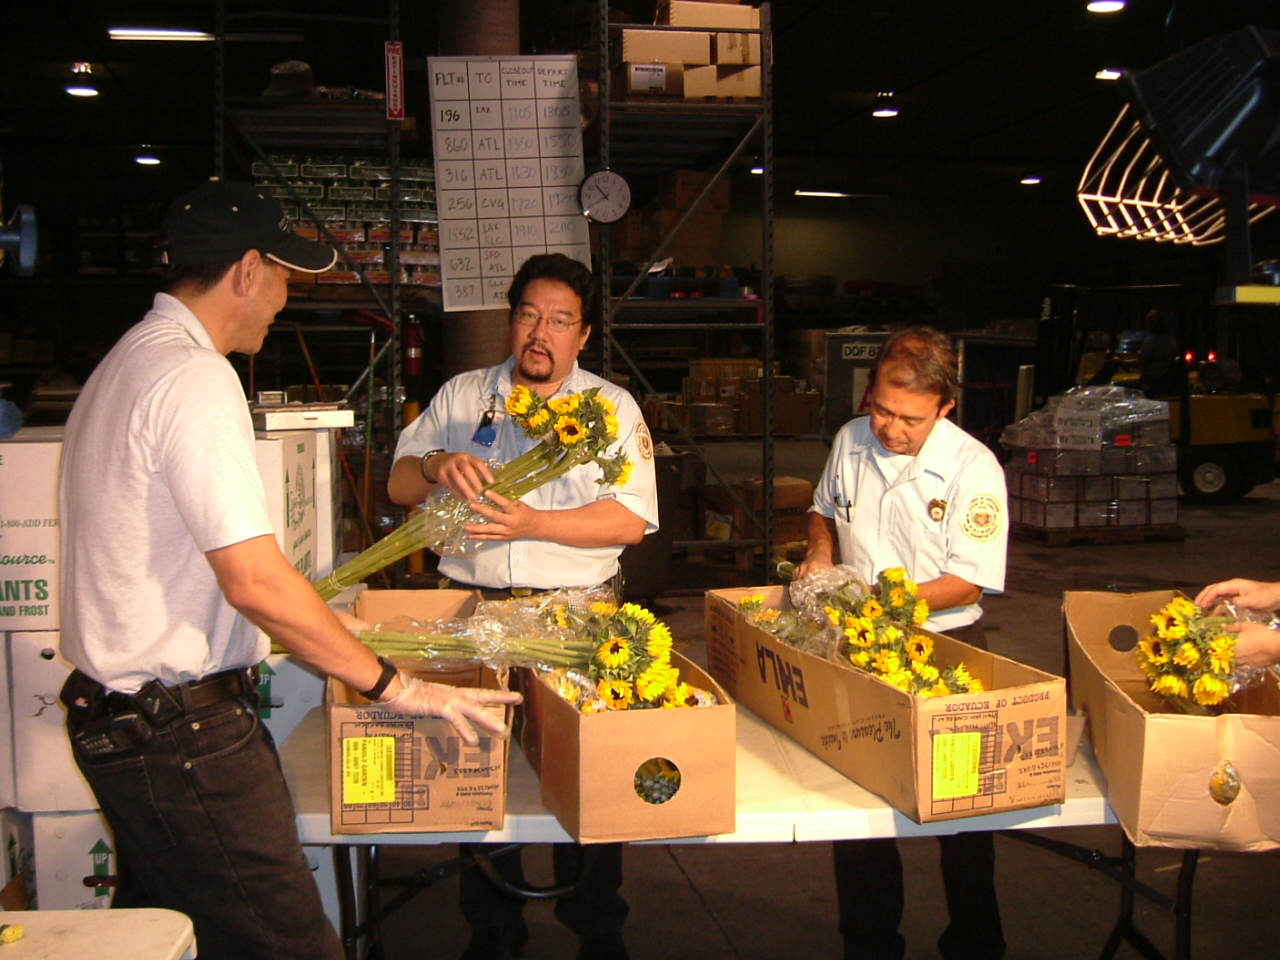 inspecting imported cut flowers.